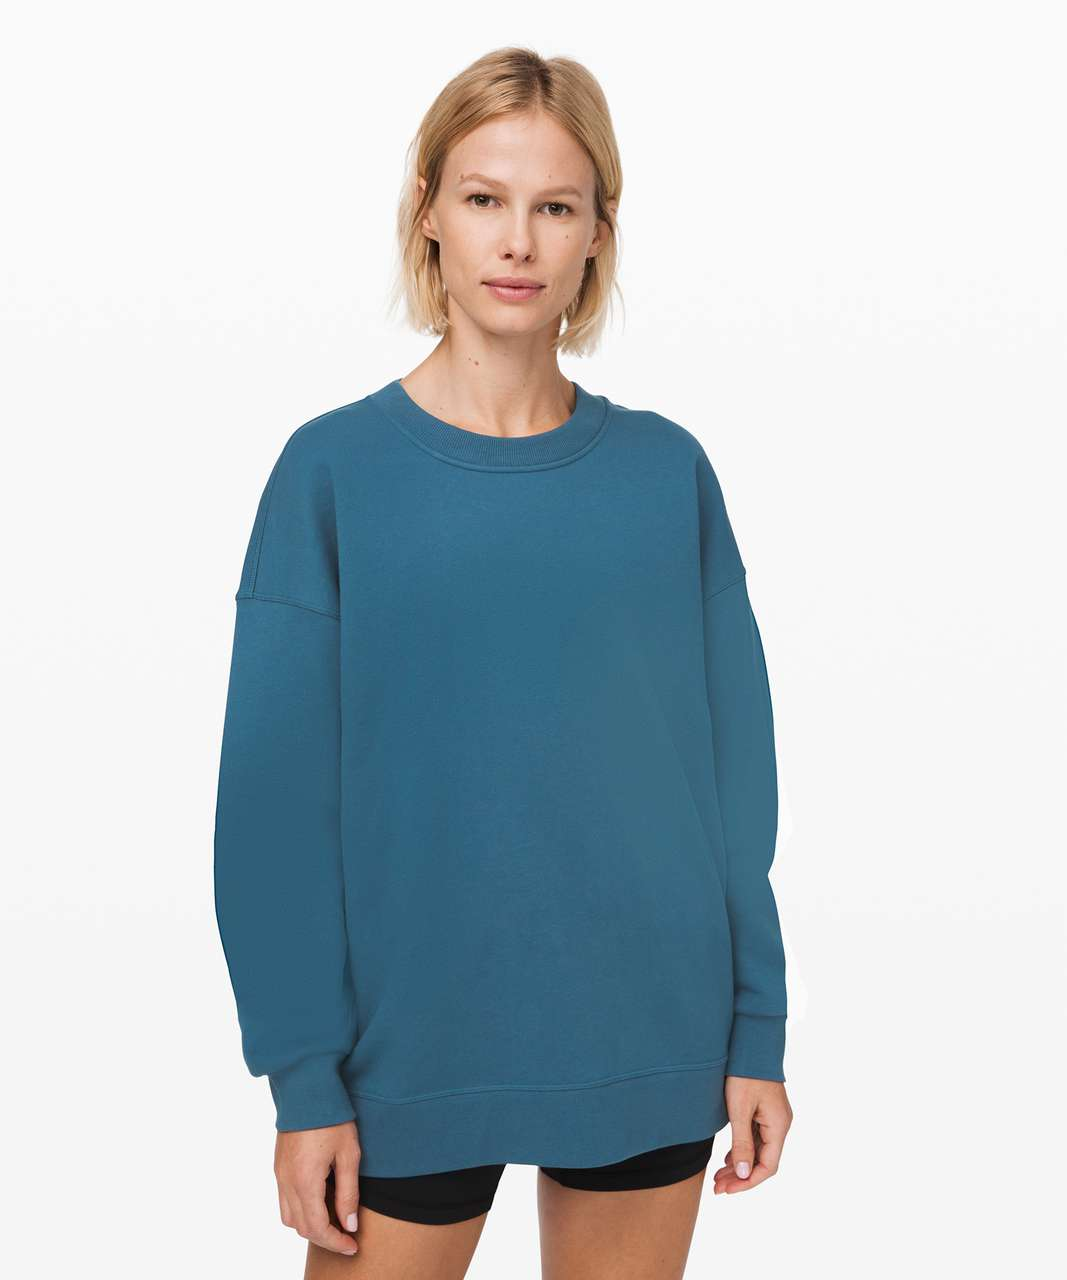 Lululemon Perfectly Oversized Crew - Petrol Blue